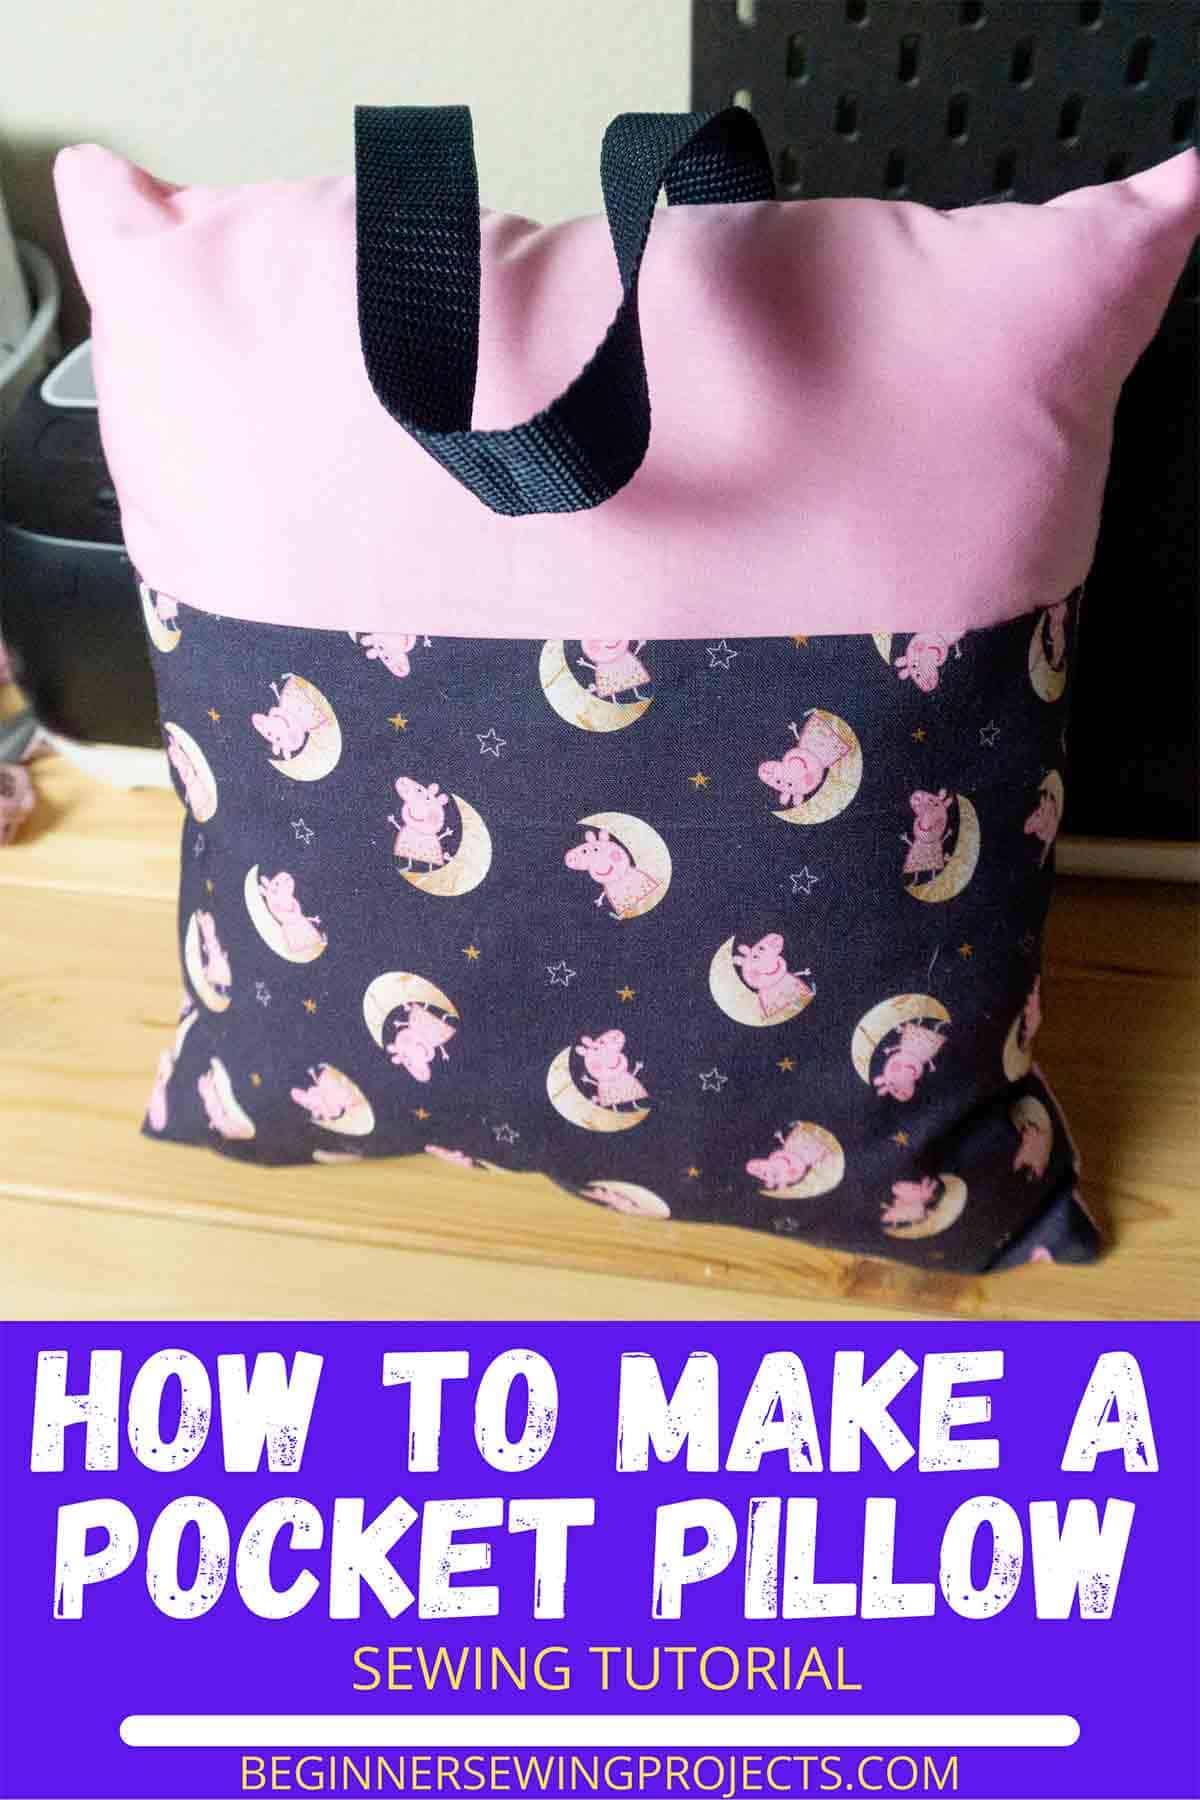 How To Make A Pocket Pillow